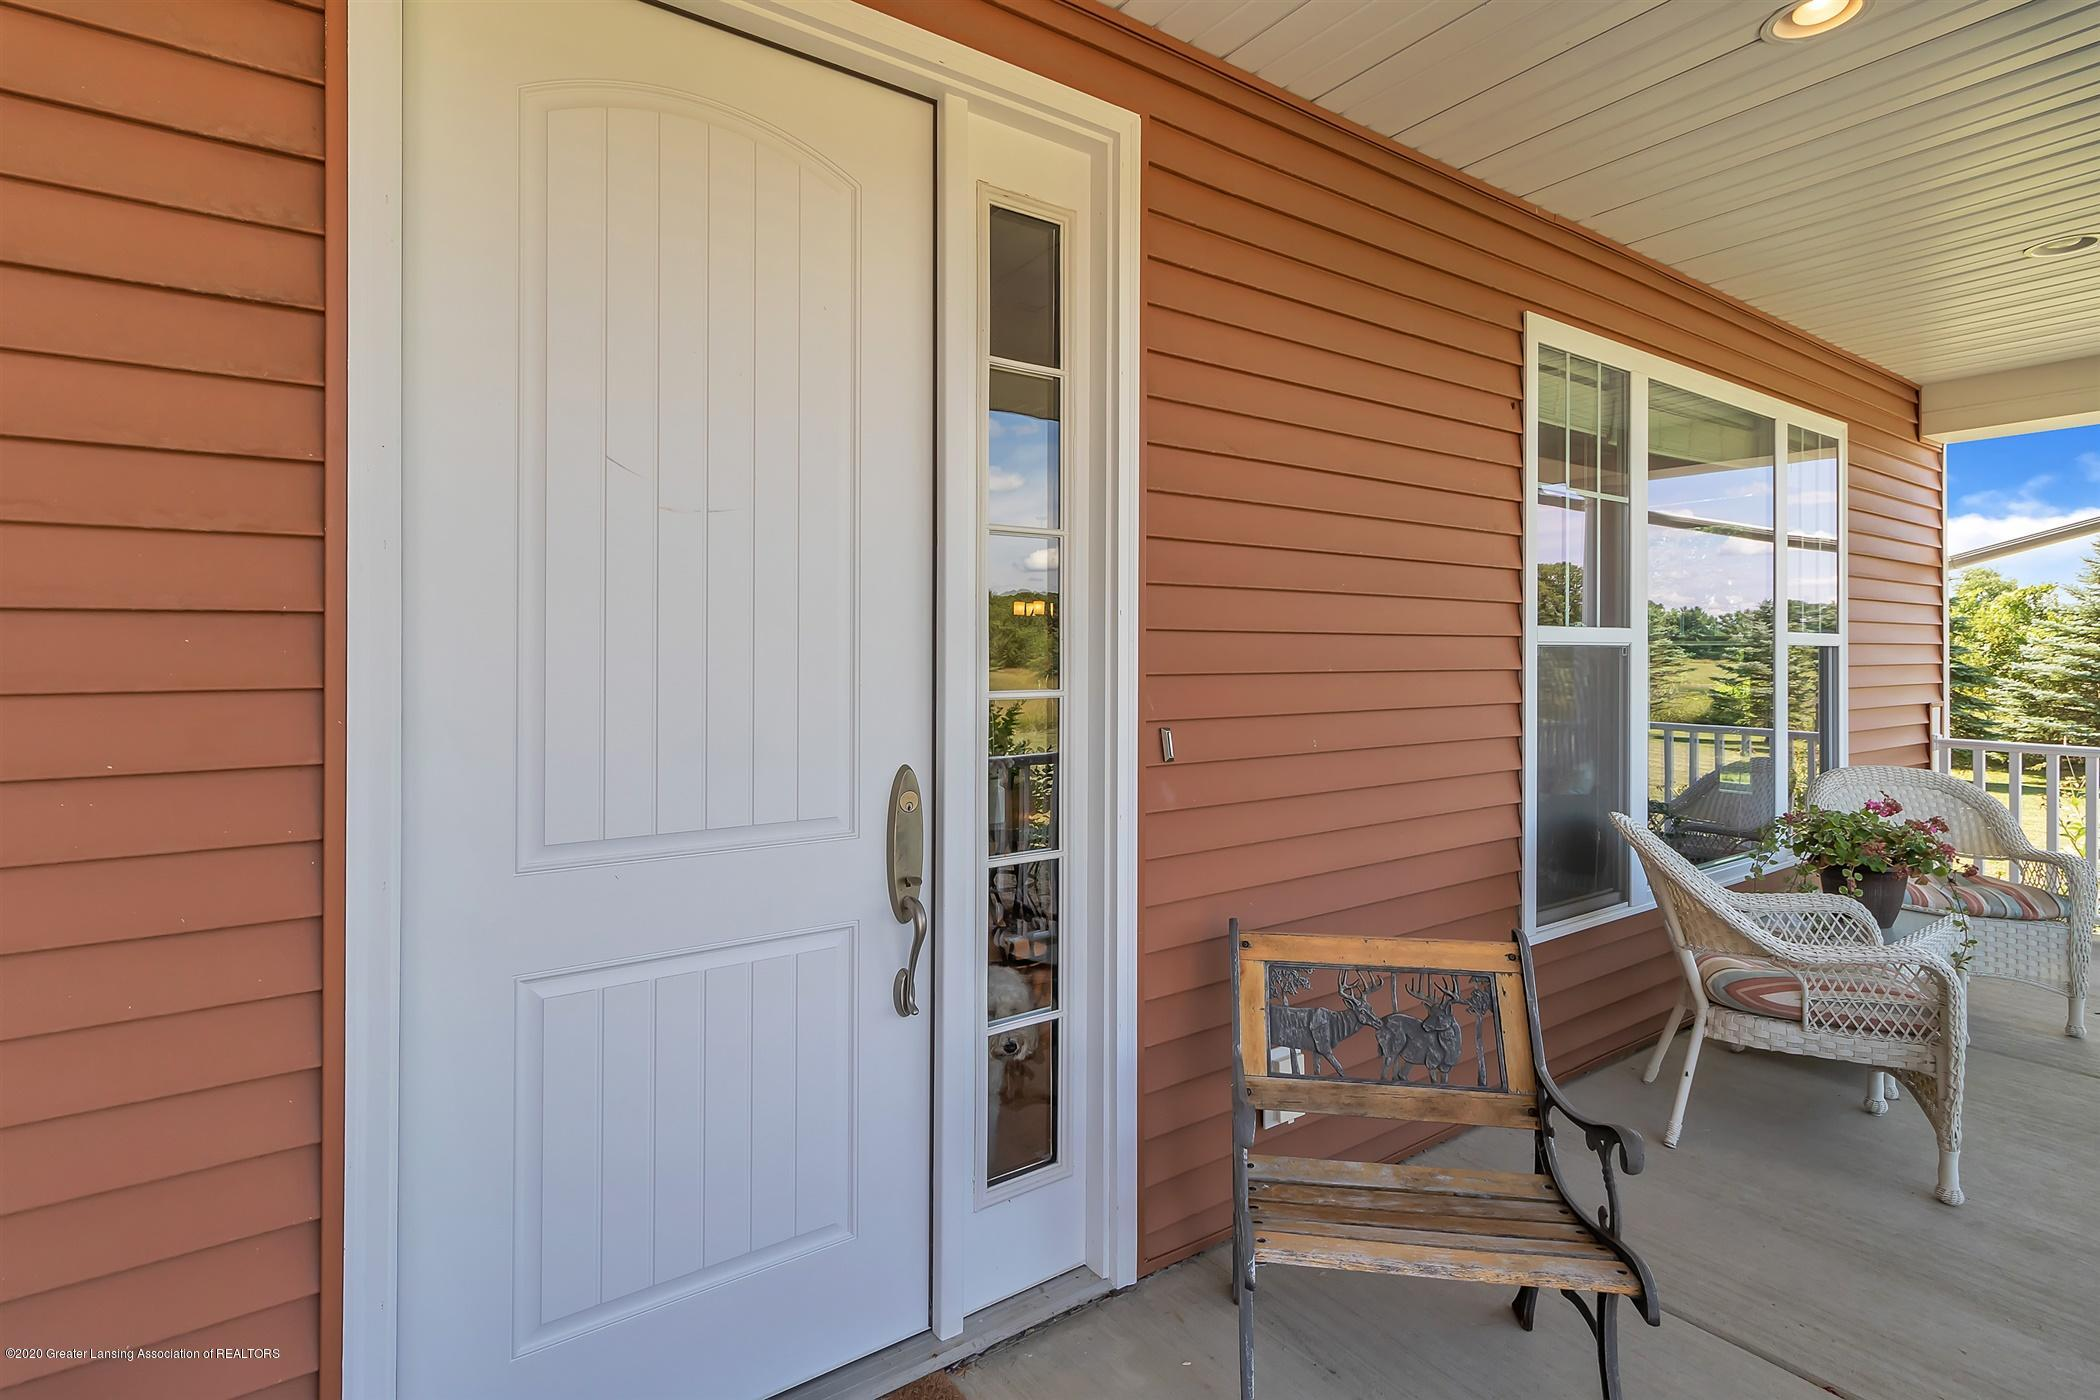 6501 Loomis Rd - 06-6501-Loomis-Rd-WindowStill-Real- - 3